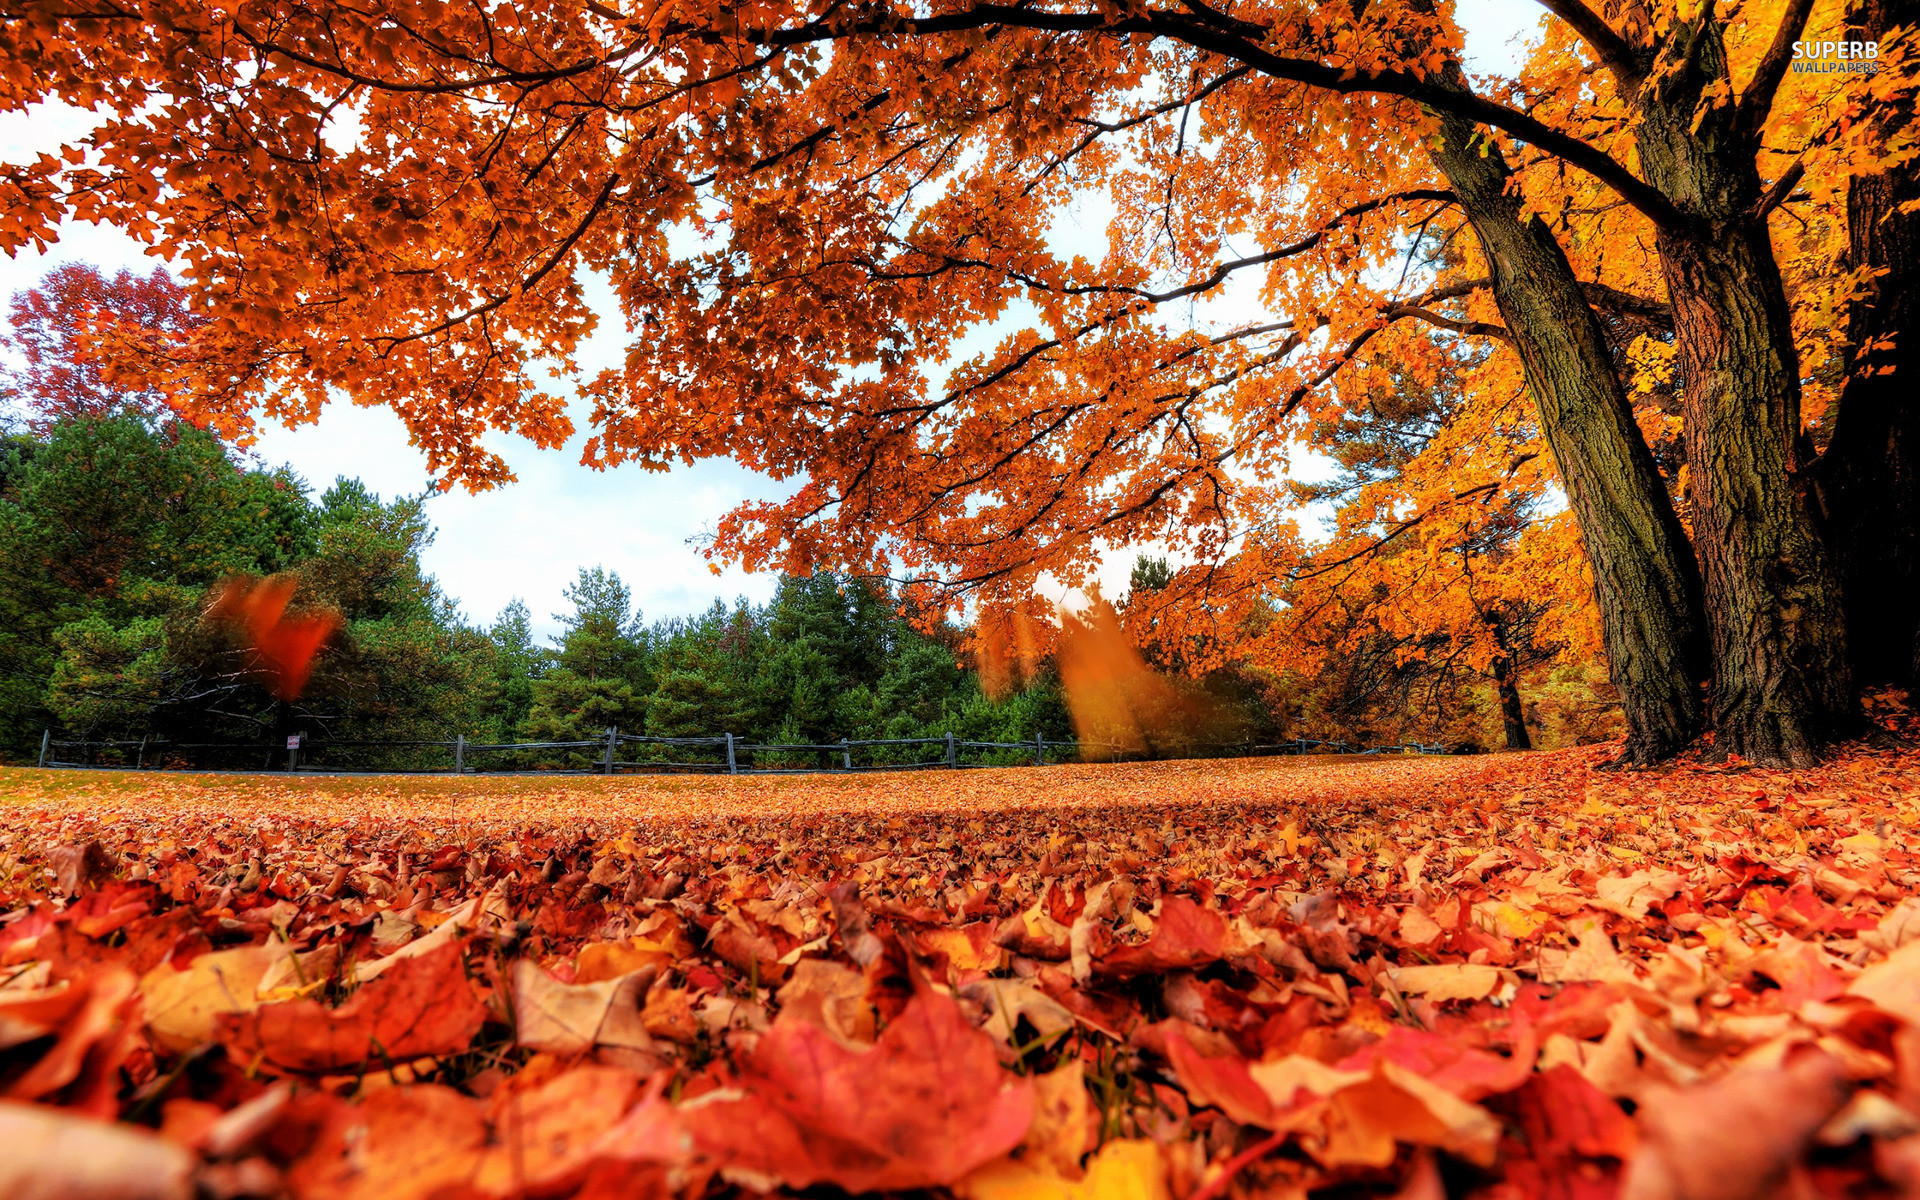 Fall Wallpaper for Desktop 68 images 1920x1200